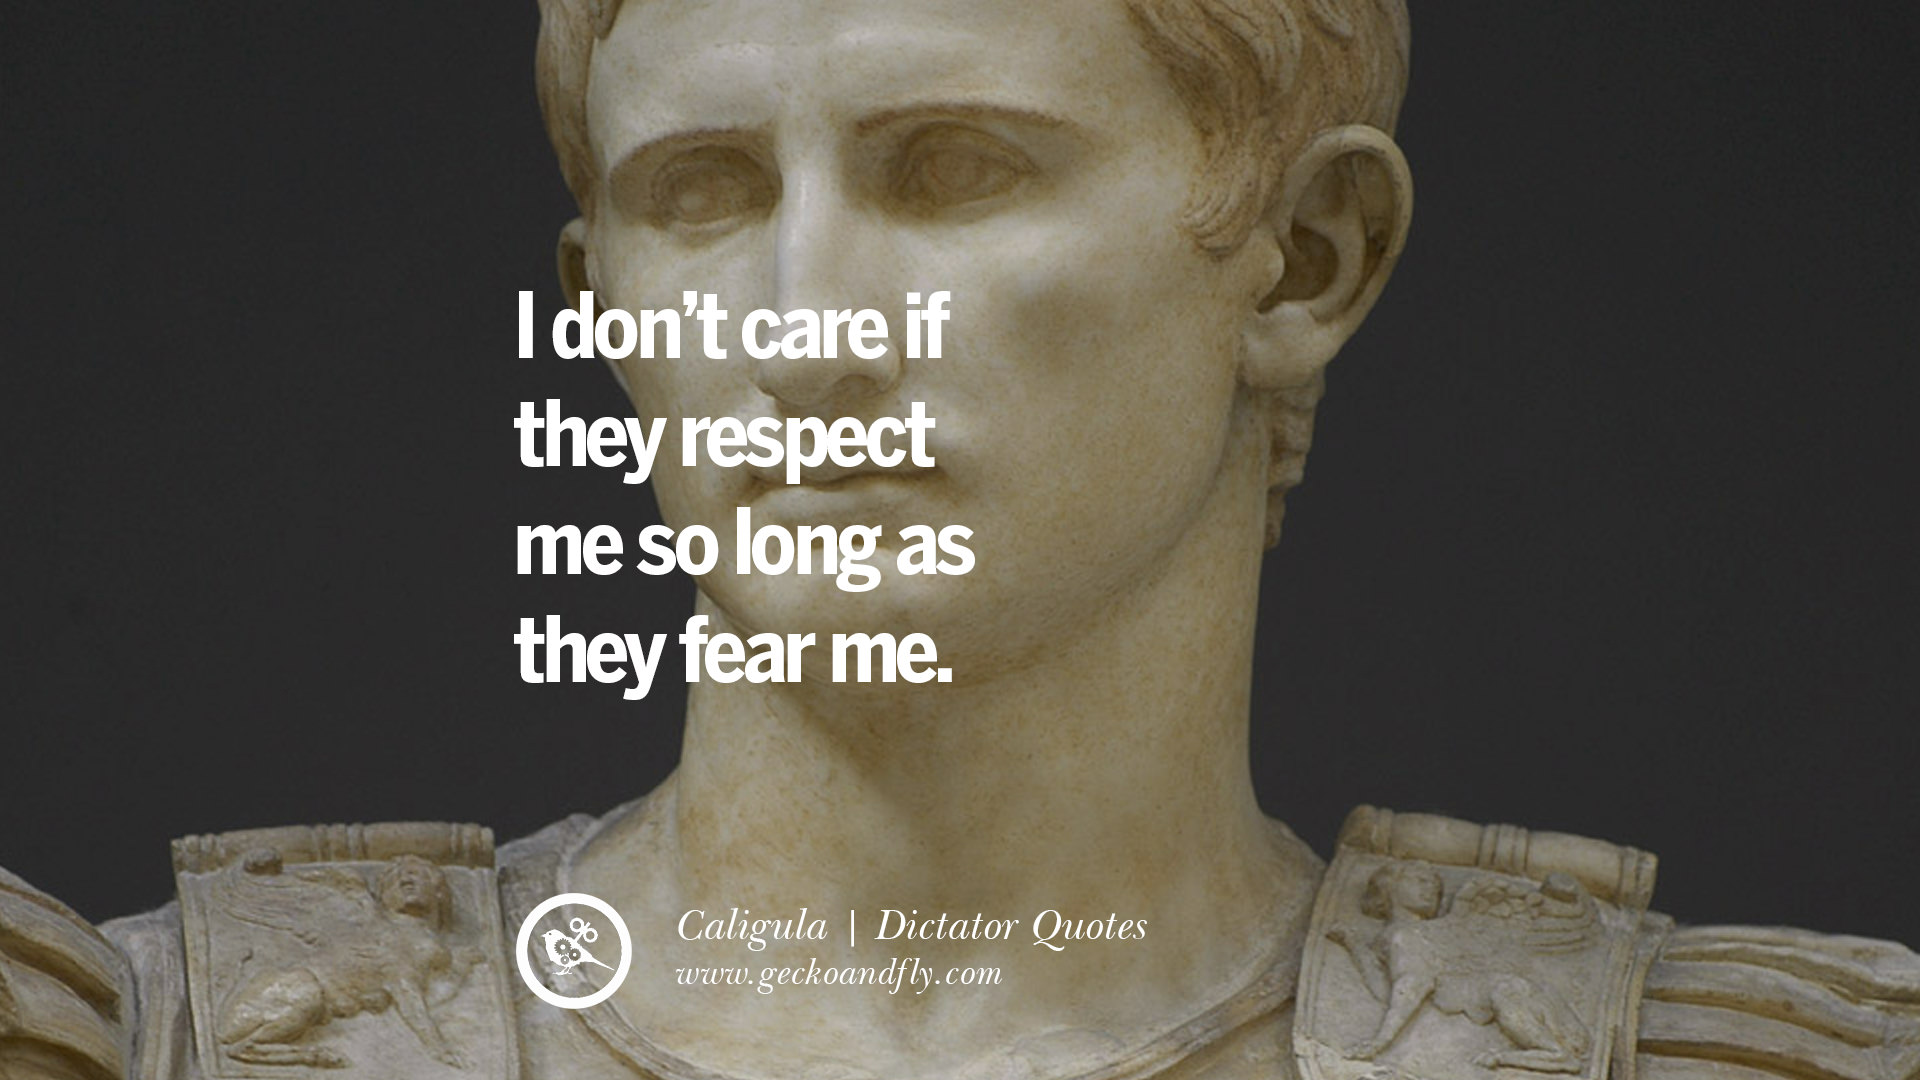 Napoleon Bonaparte Quote Wallpaper 10 Famous Quotes By Some Of The World S Worst Dictators